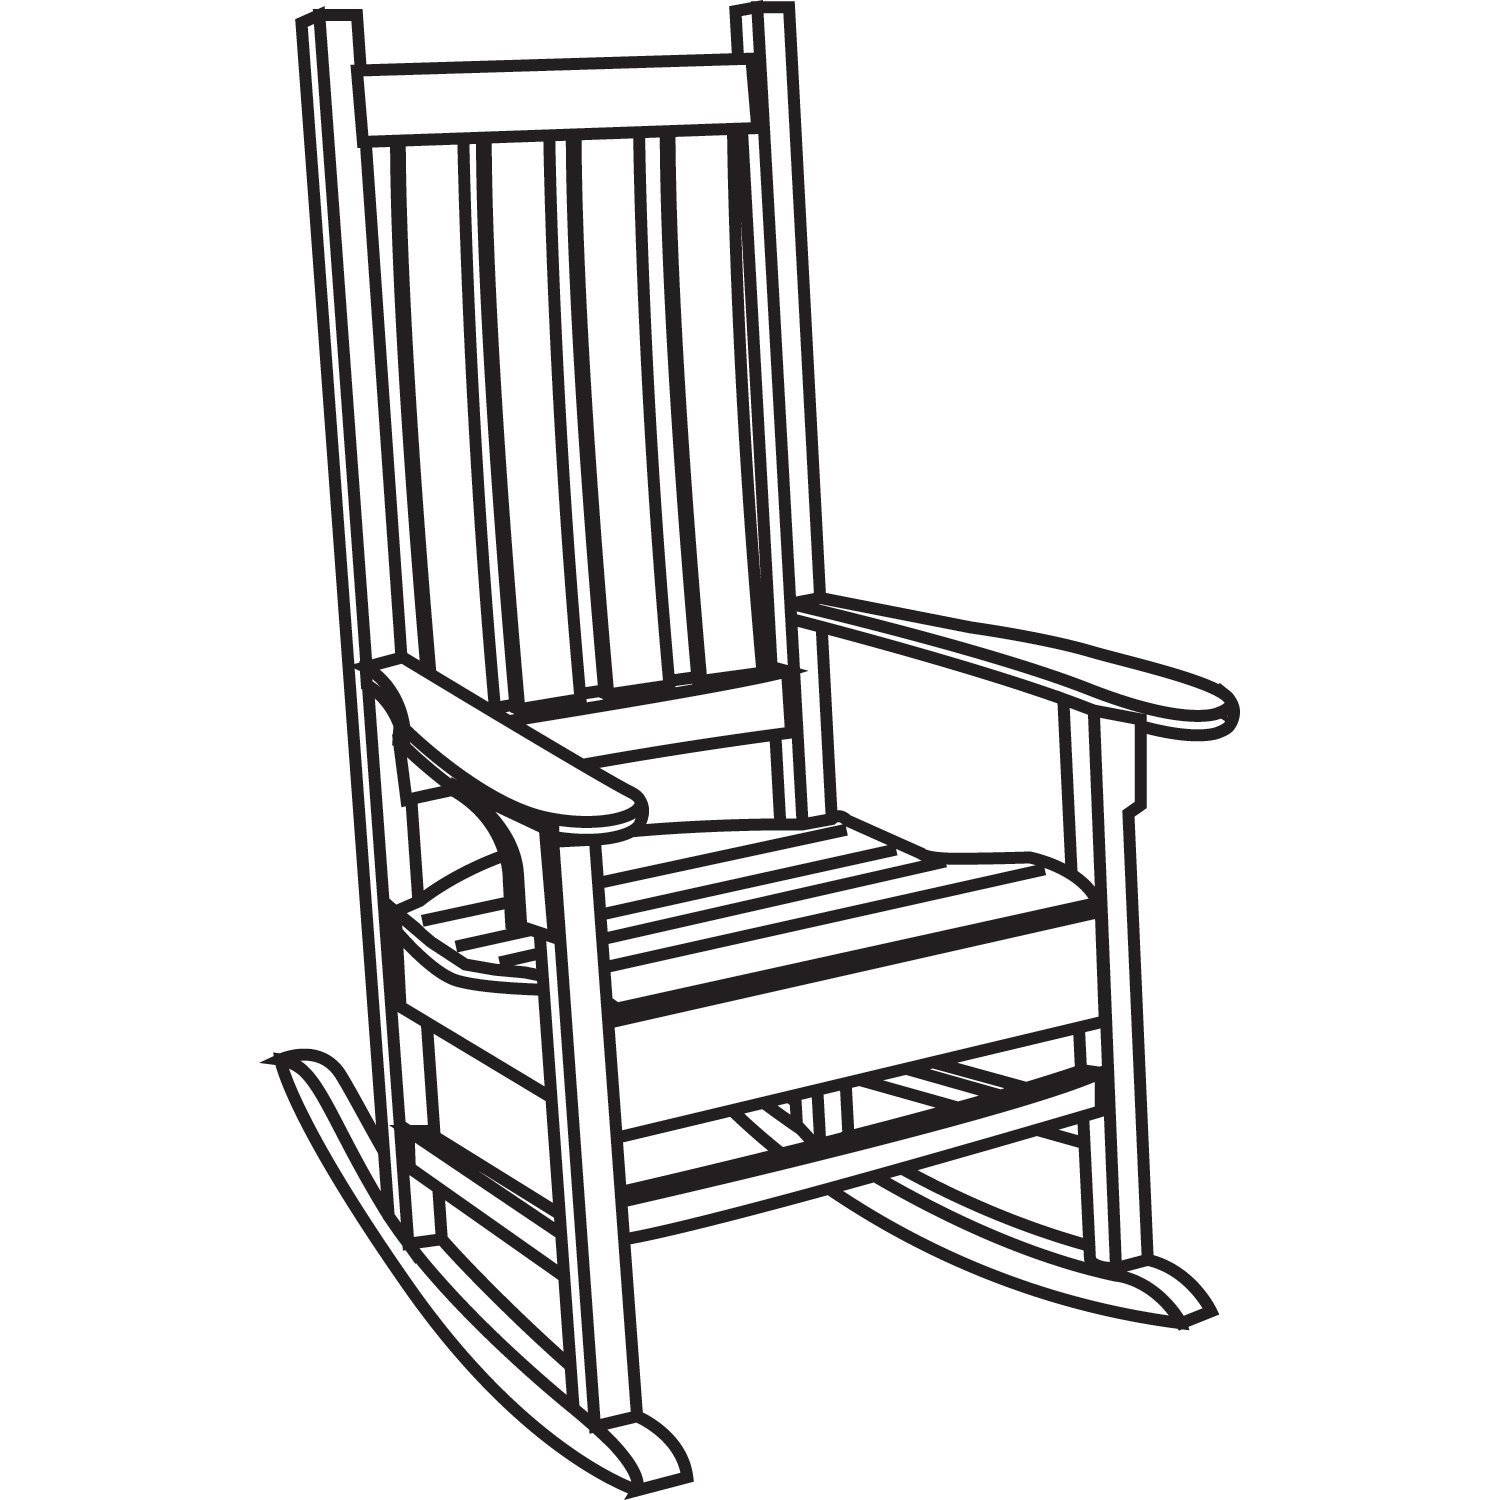 1500x1500 Furniture Delightful Chairs Clipart Black And White Chair Clip